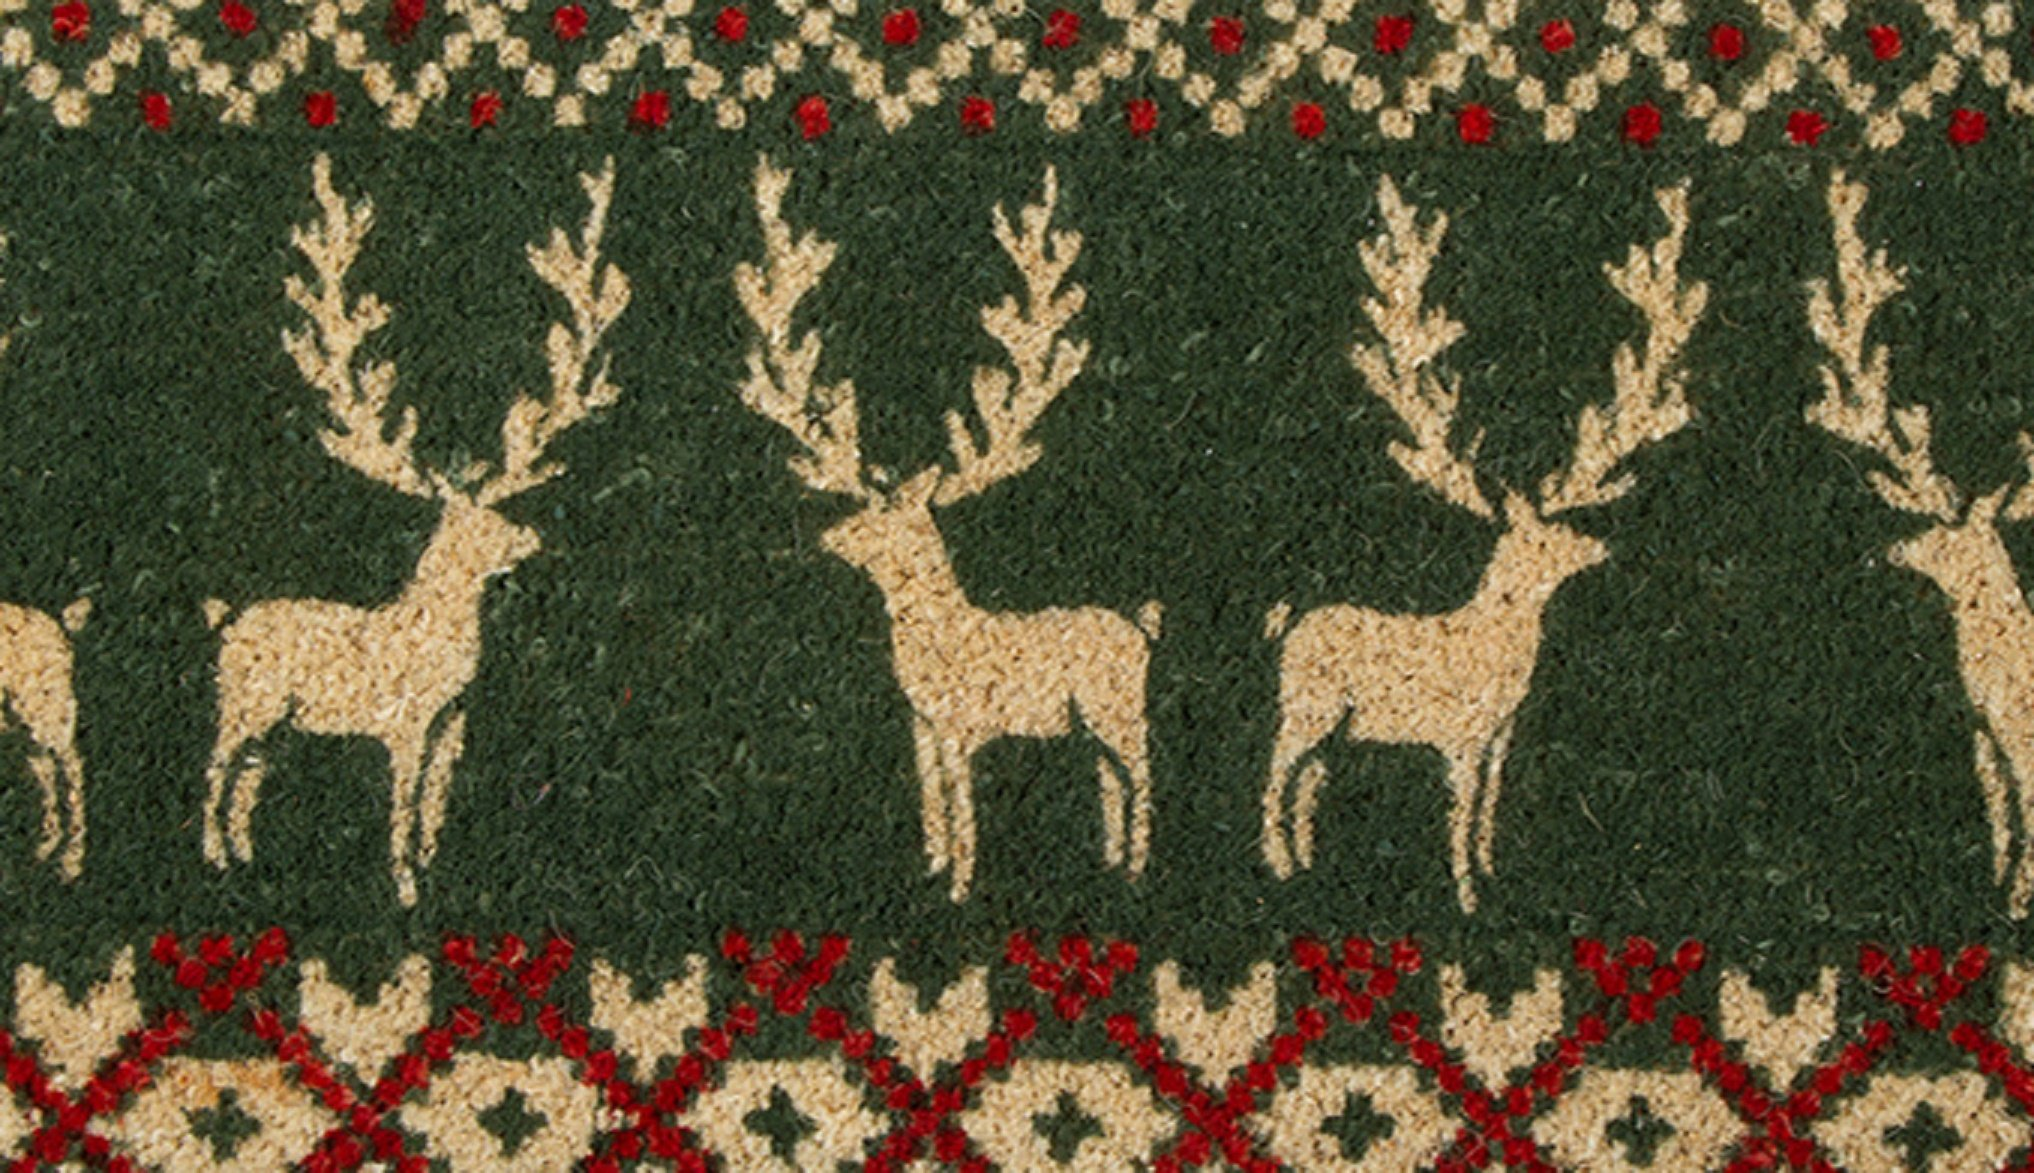 Tag Green Alpine Reindeer Holiday Winter Sweater Estate Coir Mat Front Doormat 40 by 18